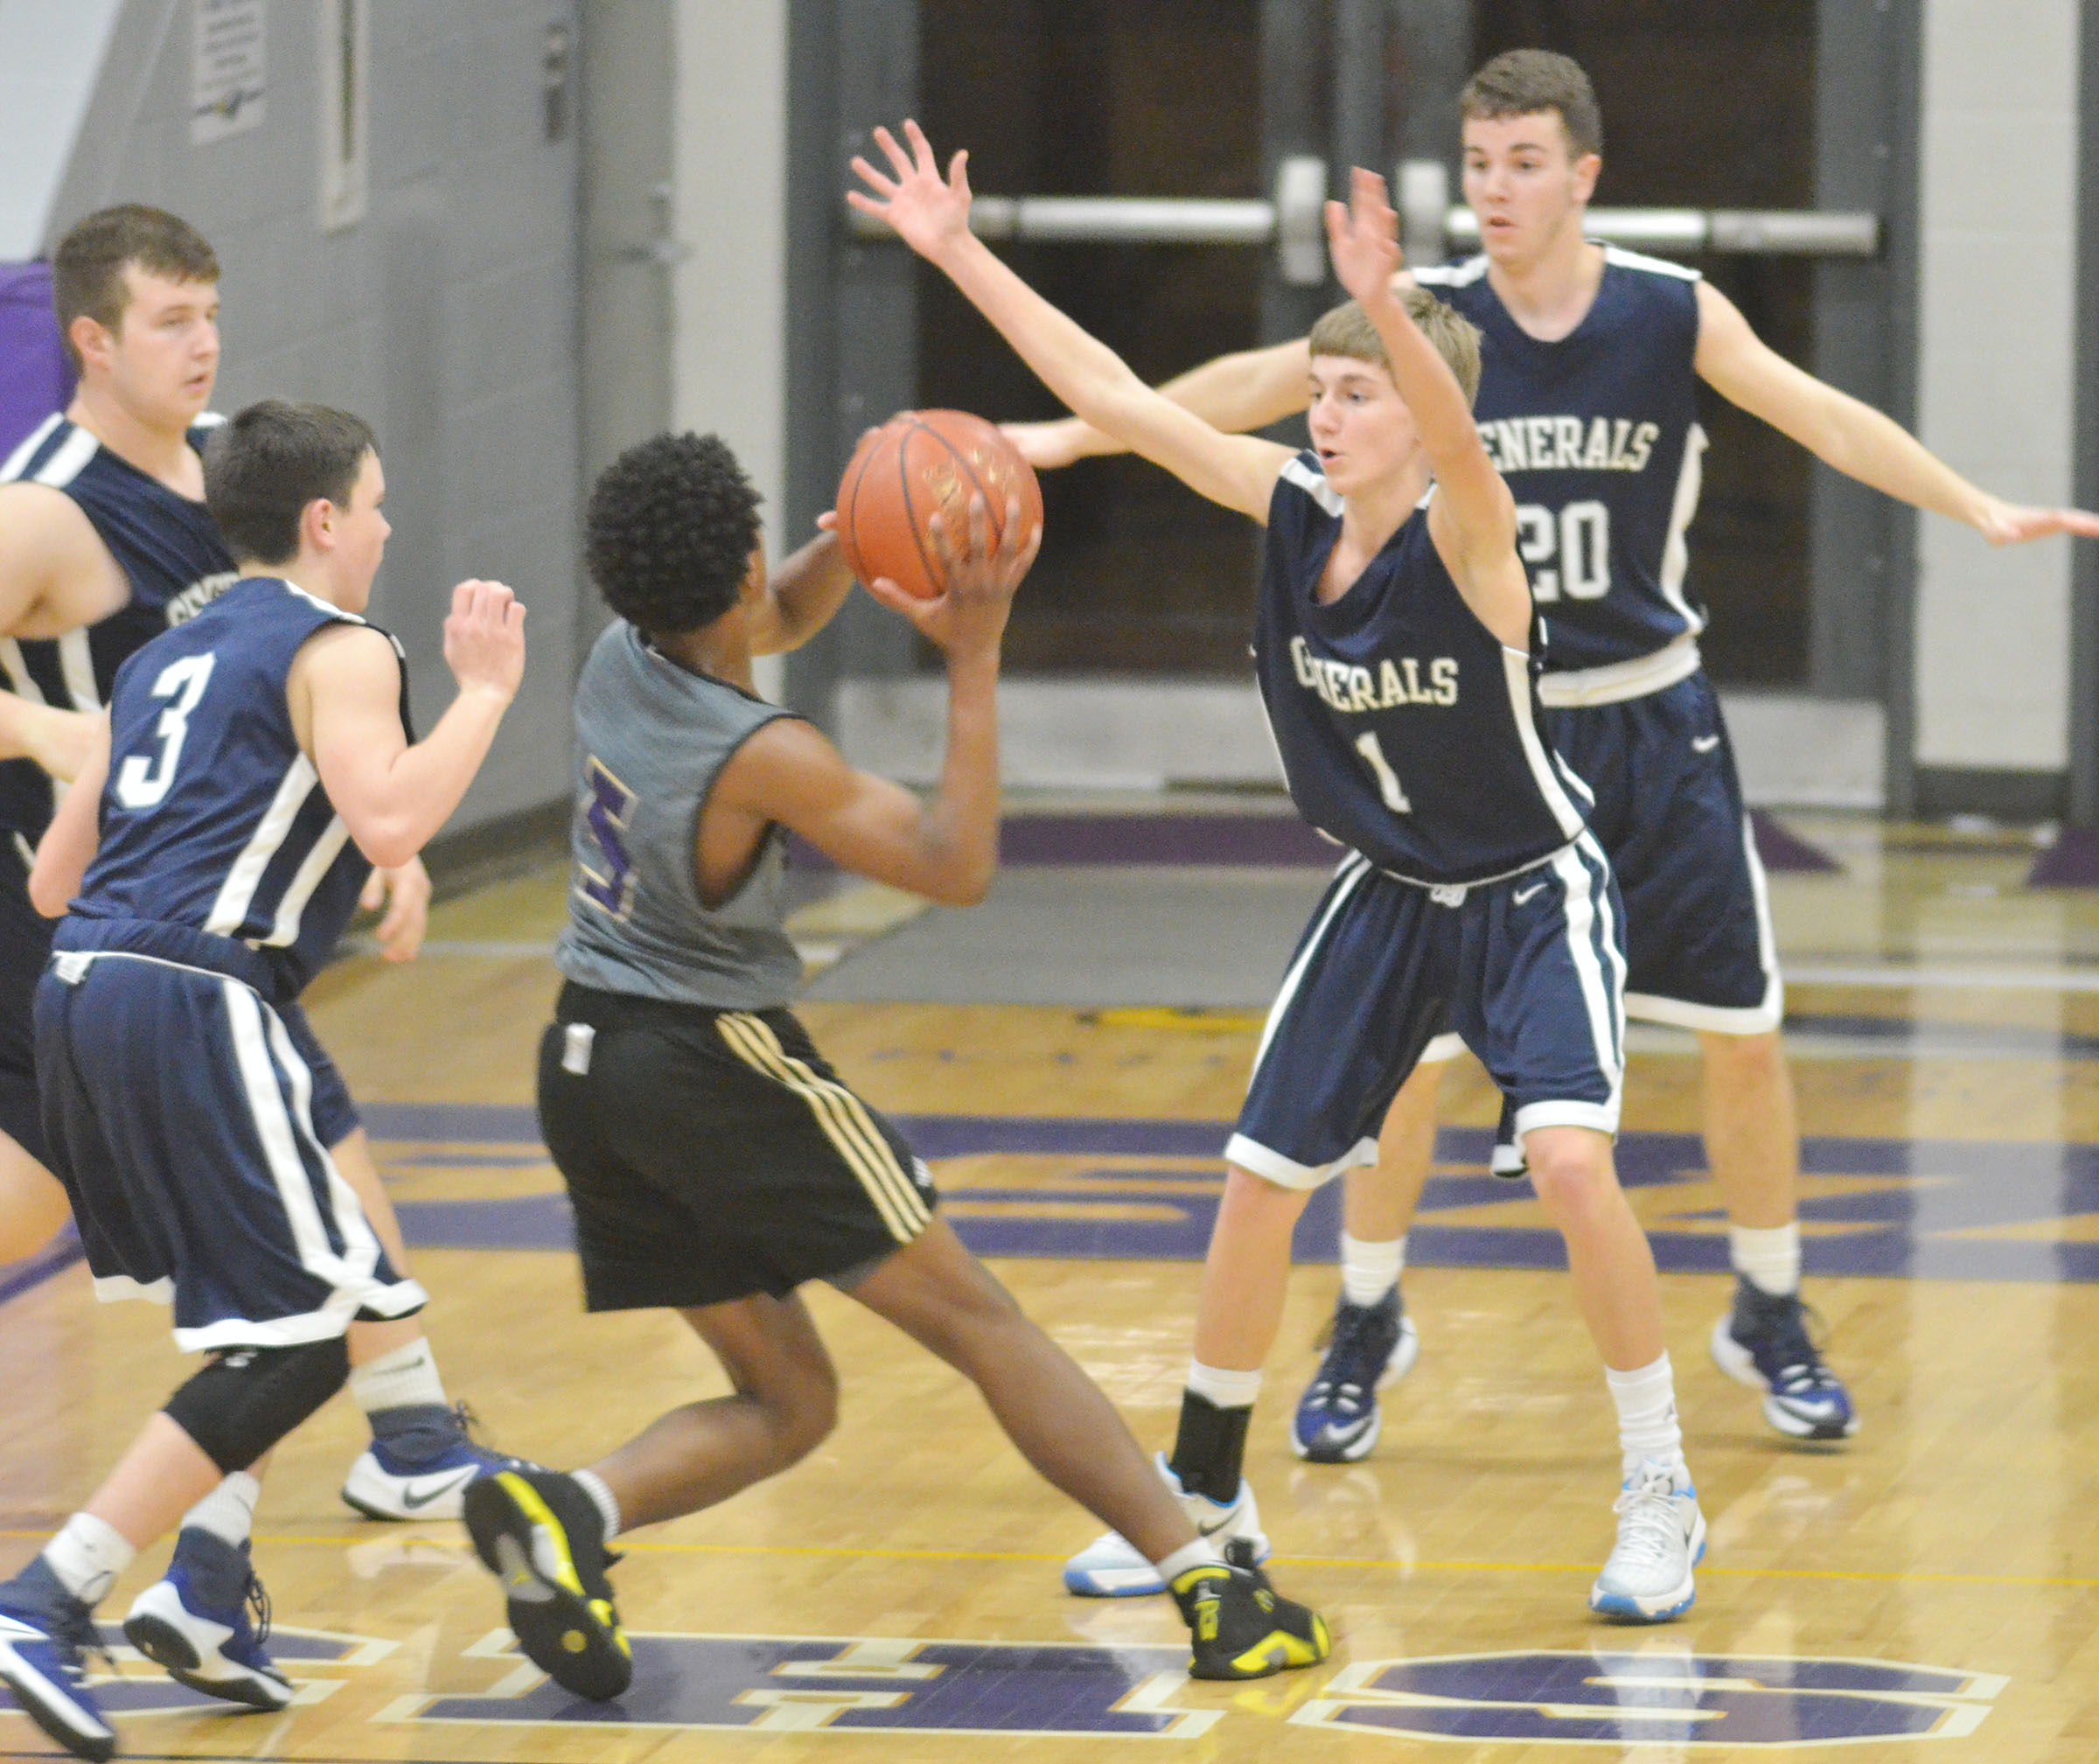 CHS freshman Malachi Corley drives the ball for two points.